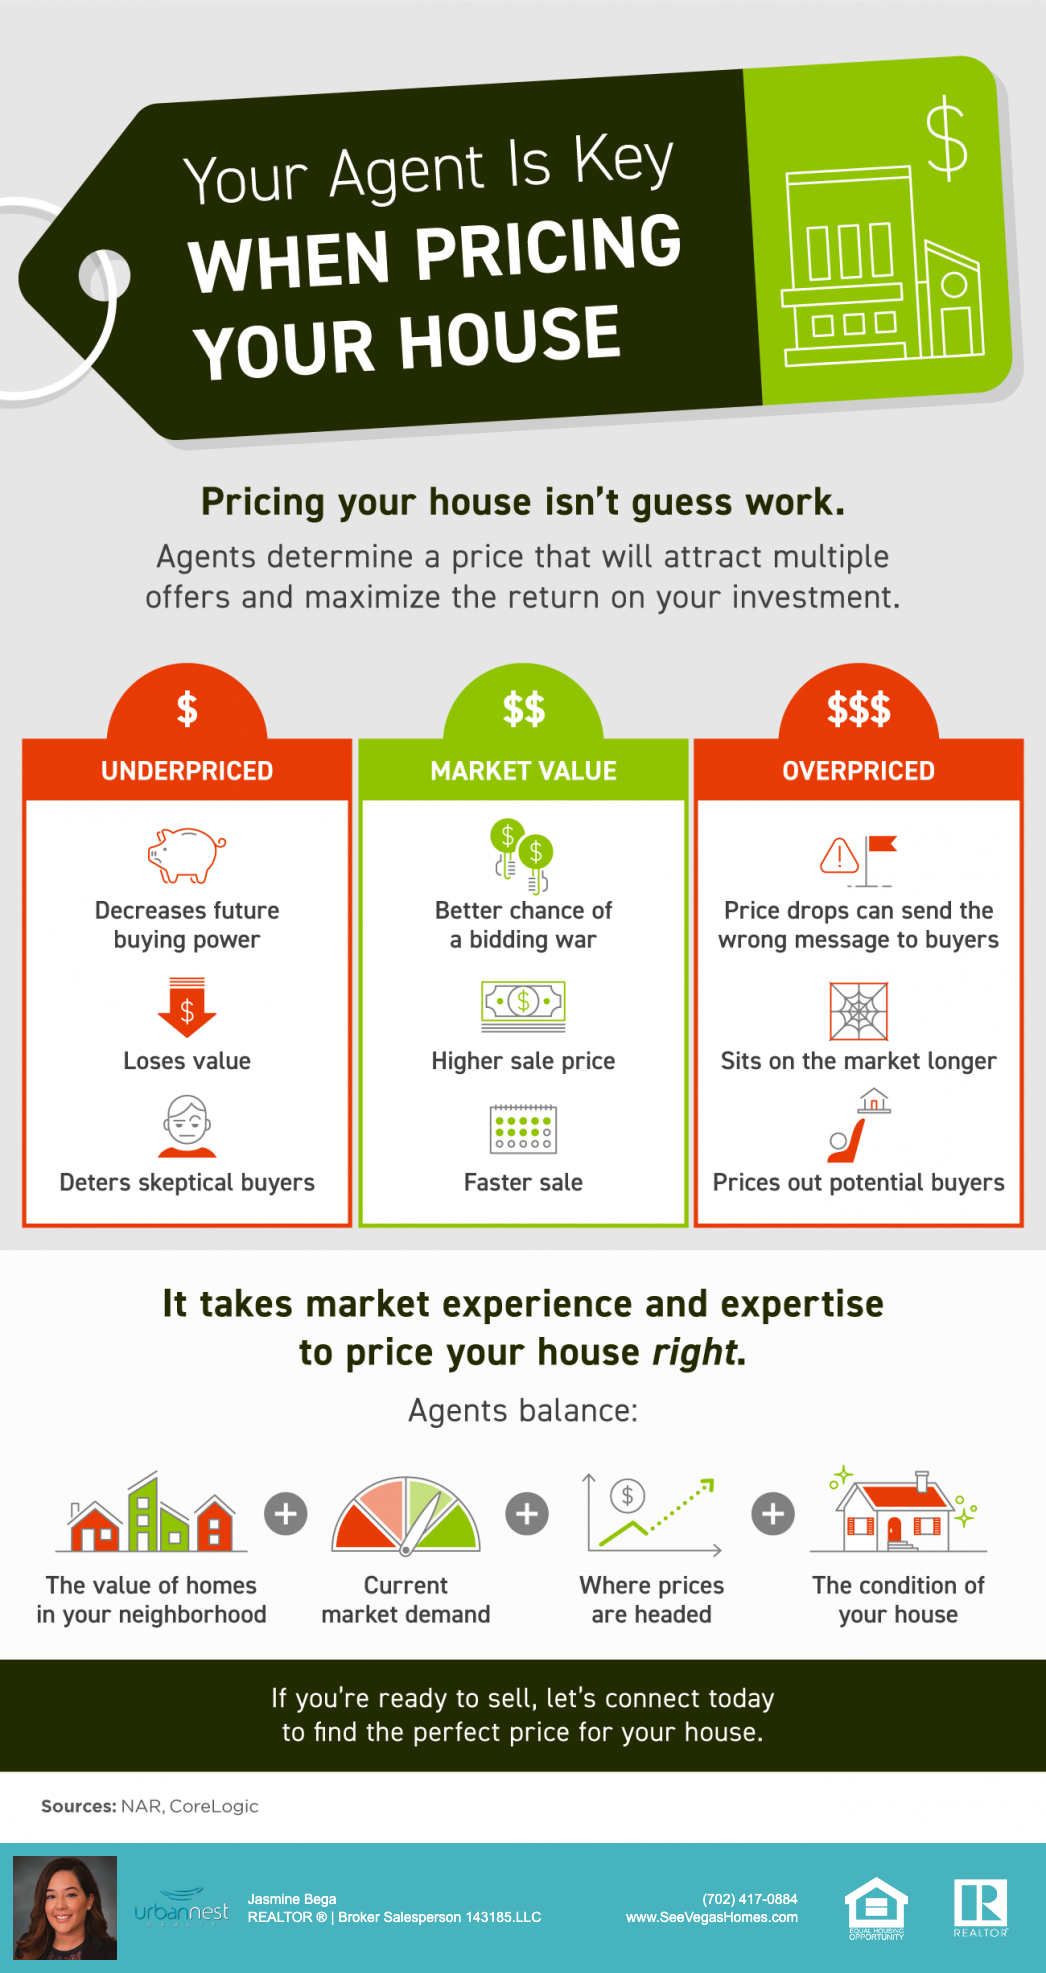 Your Agent Is Key When Pricing Your Las Vegas Home [INFOGRAPHIC]